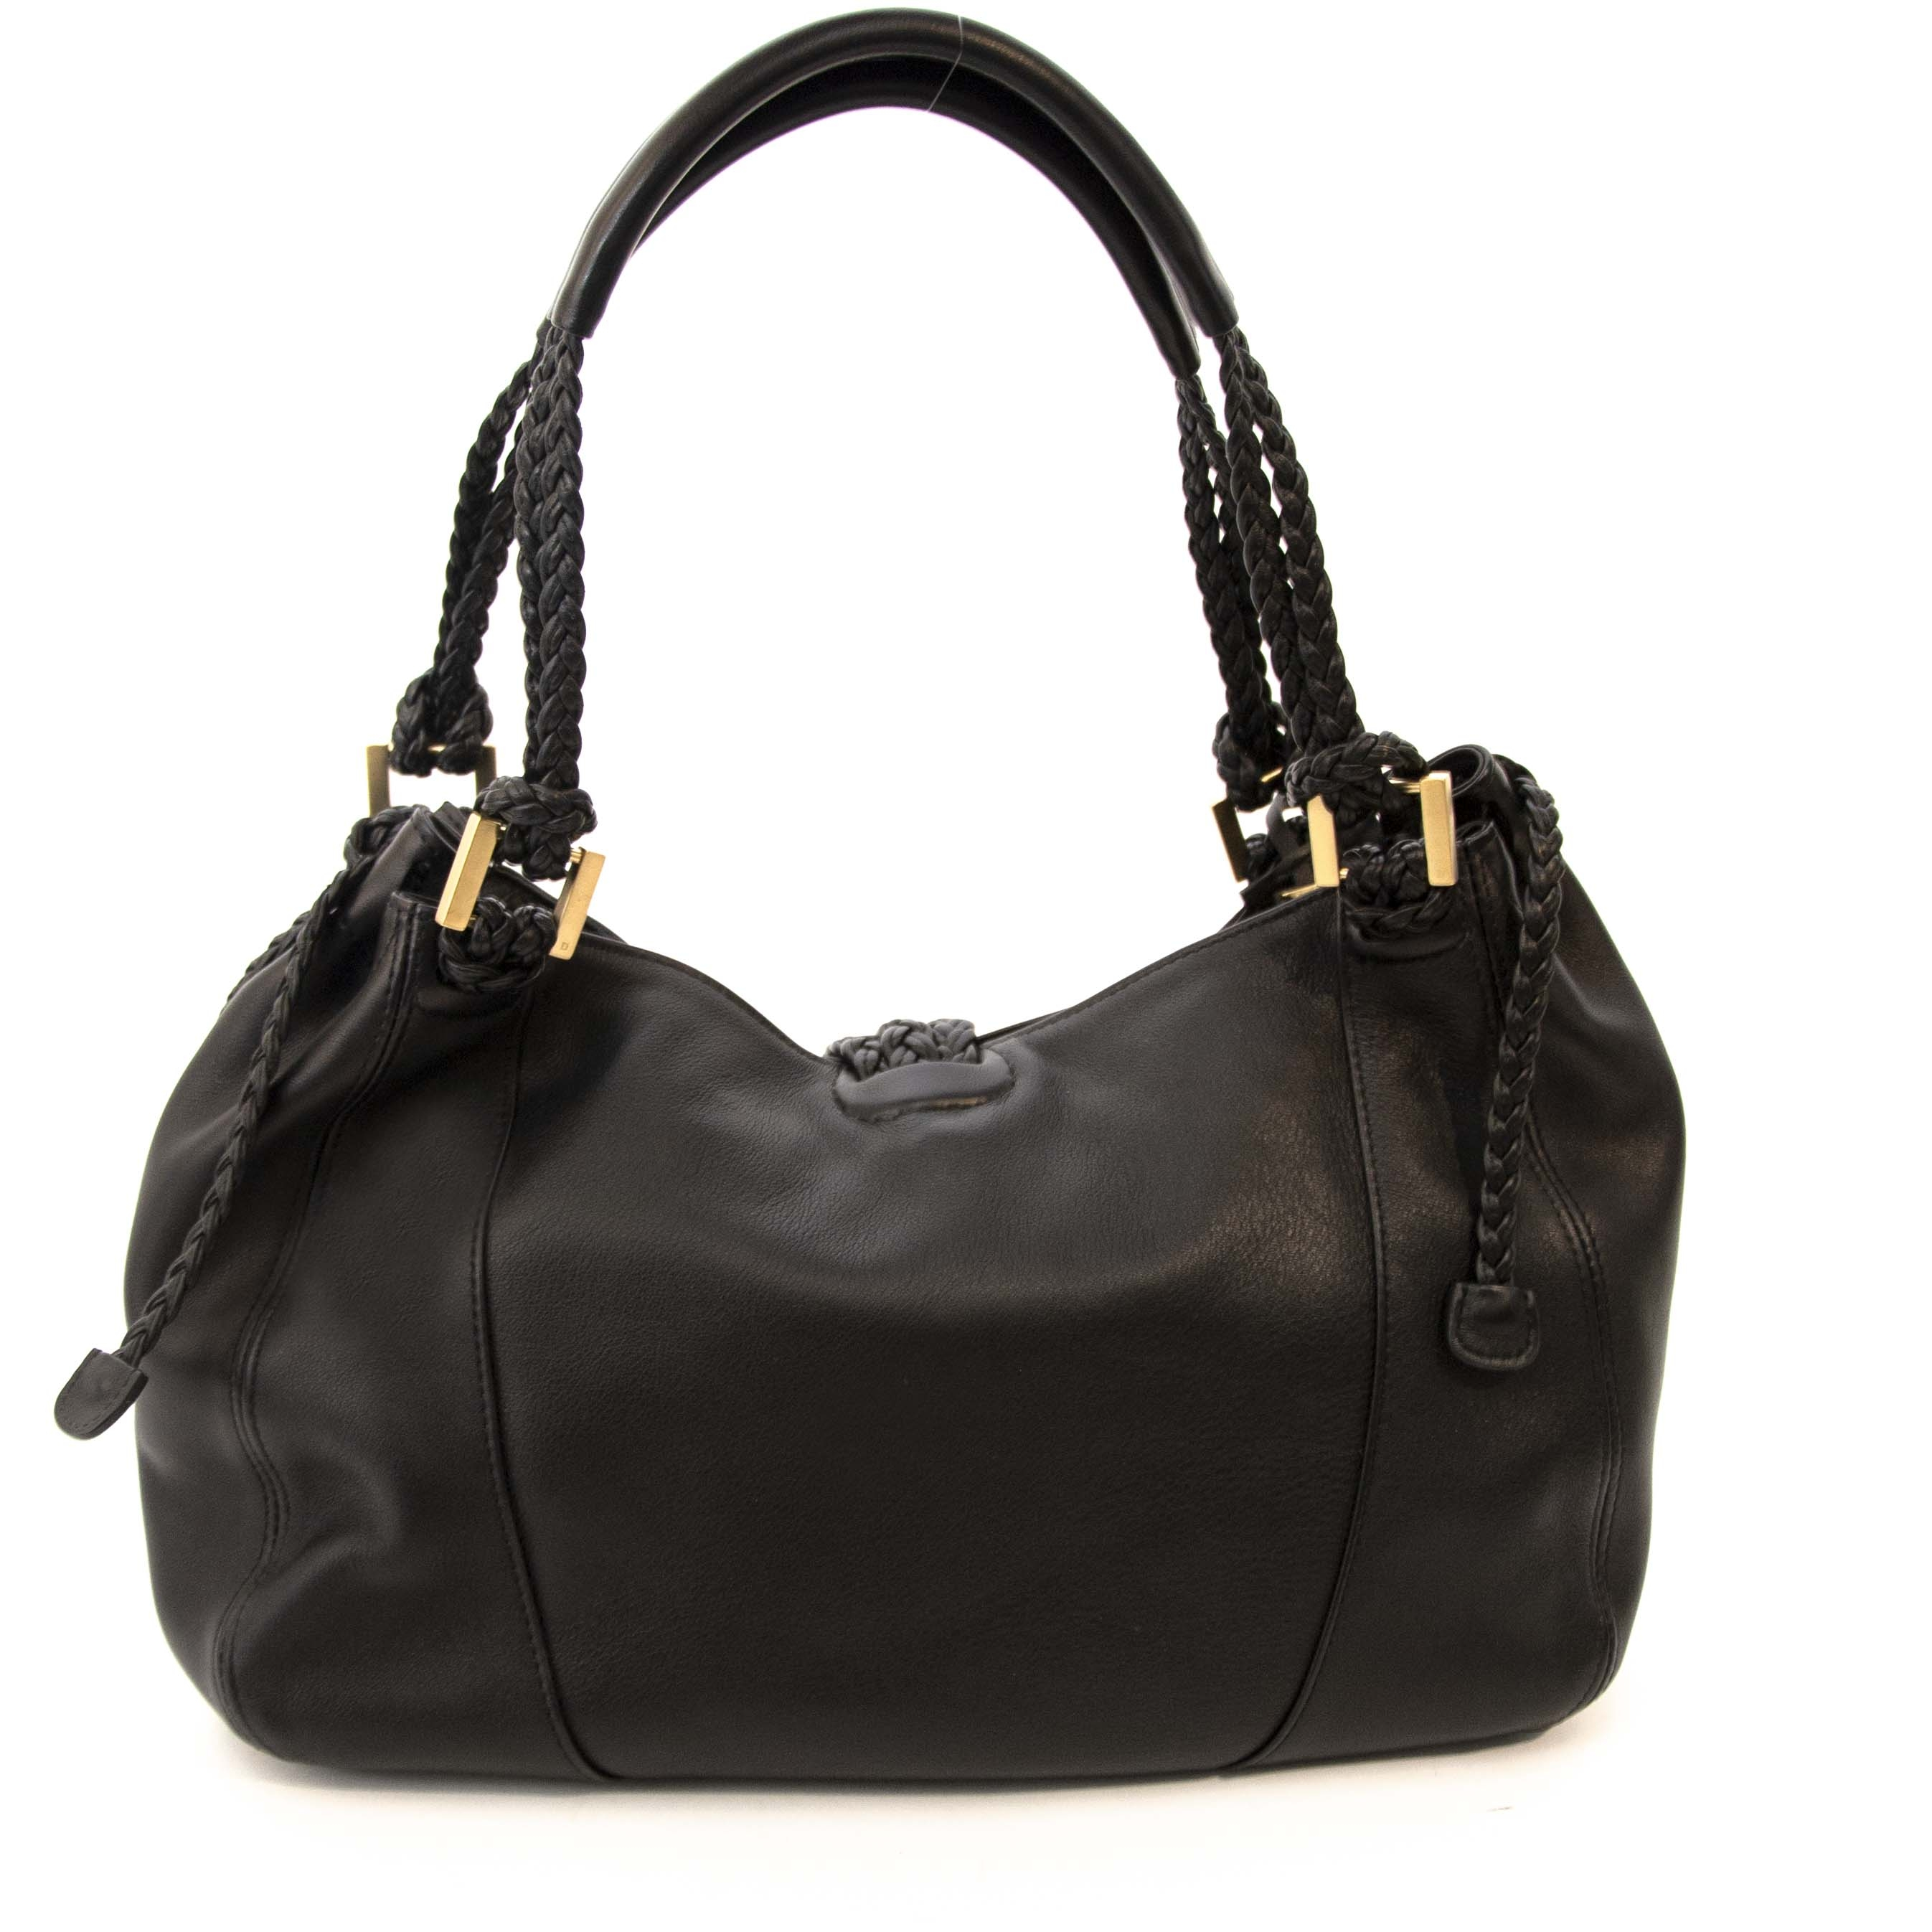 shop safe and secure online at labellov.com Delvaux Black Eugene PM Bag